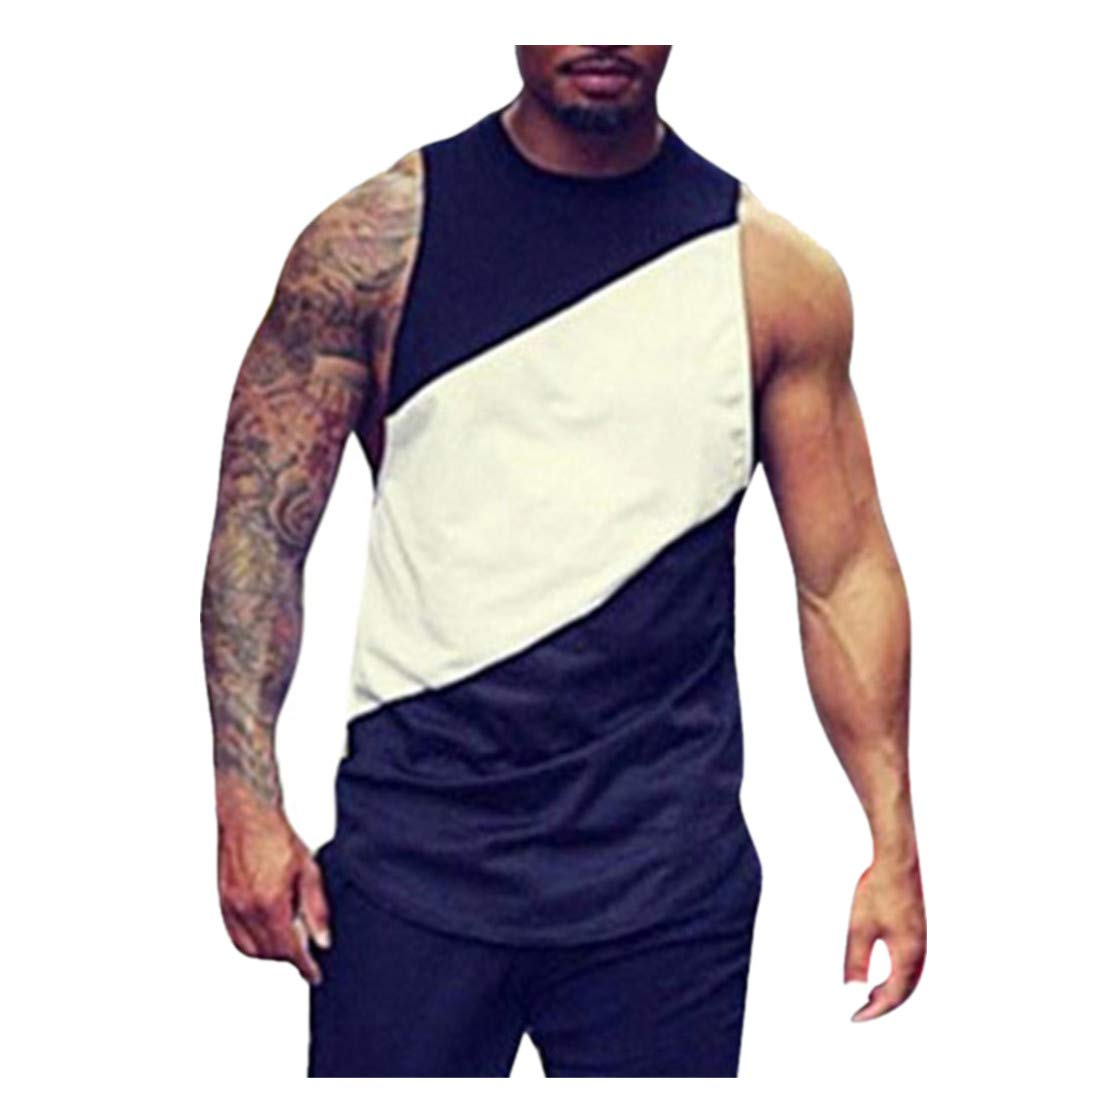 WEUIE Mens Sportswear Personality Men's Summer Autumn Short Sleeved Plaid T Shirt Top Pullover Blouse (S, Black)